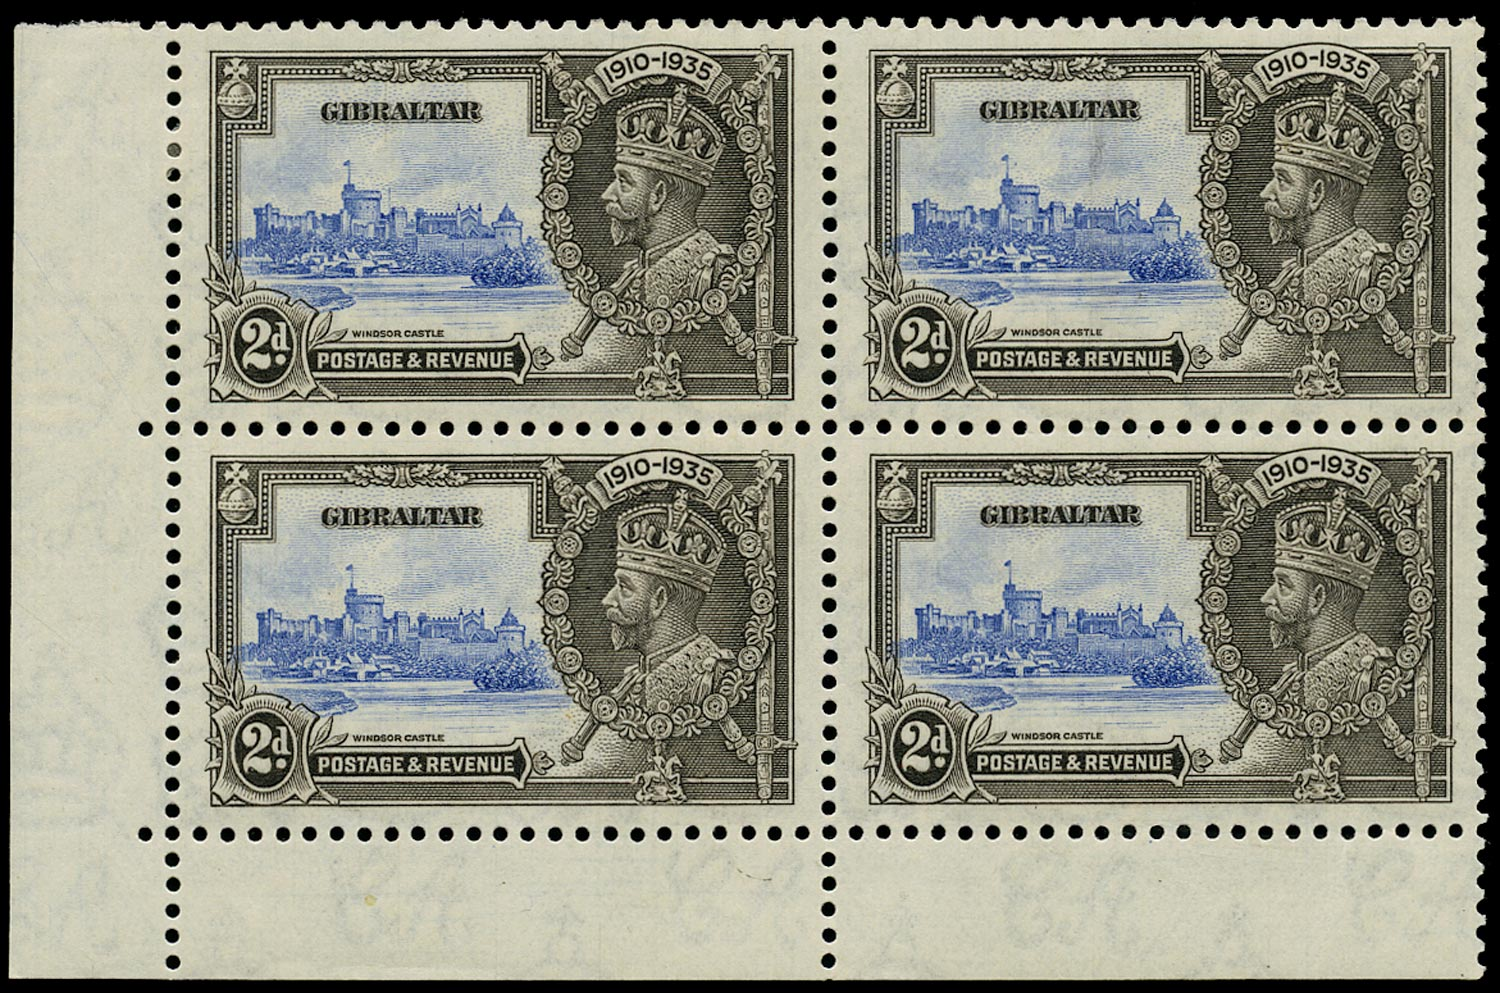 GIBRALTAR 1935  SG114a Mint Silver Jubilee 2d variety Extra Flagstaff